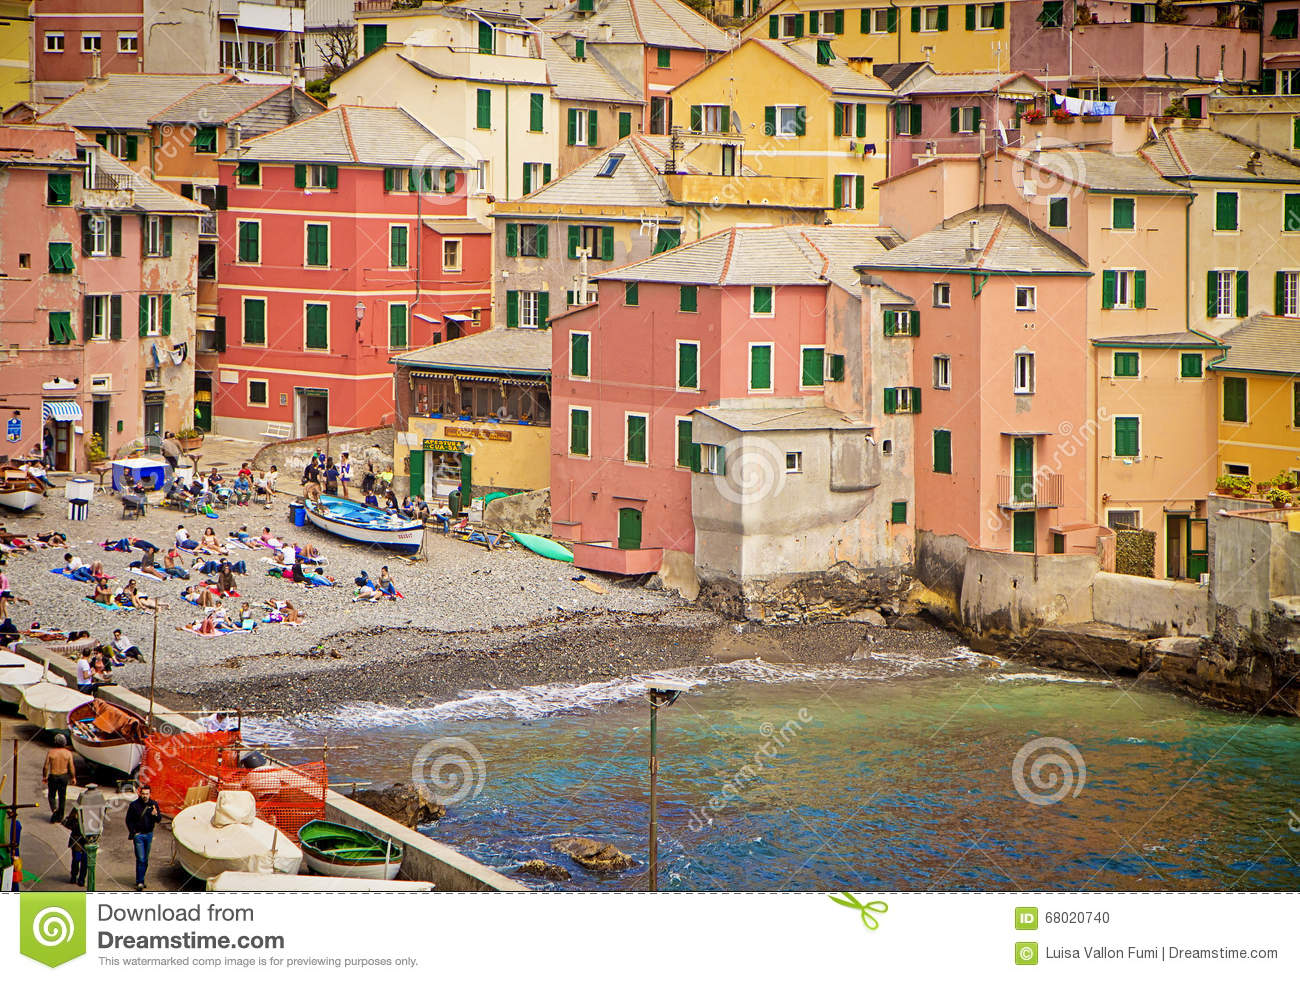 Genoa, Italy - bathers on the small shore of the Boccadasse bay